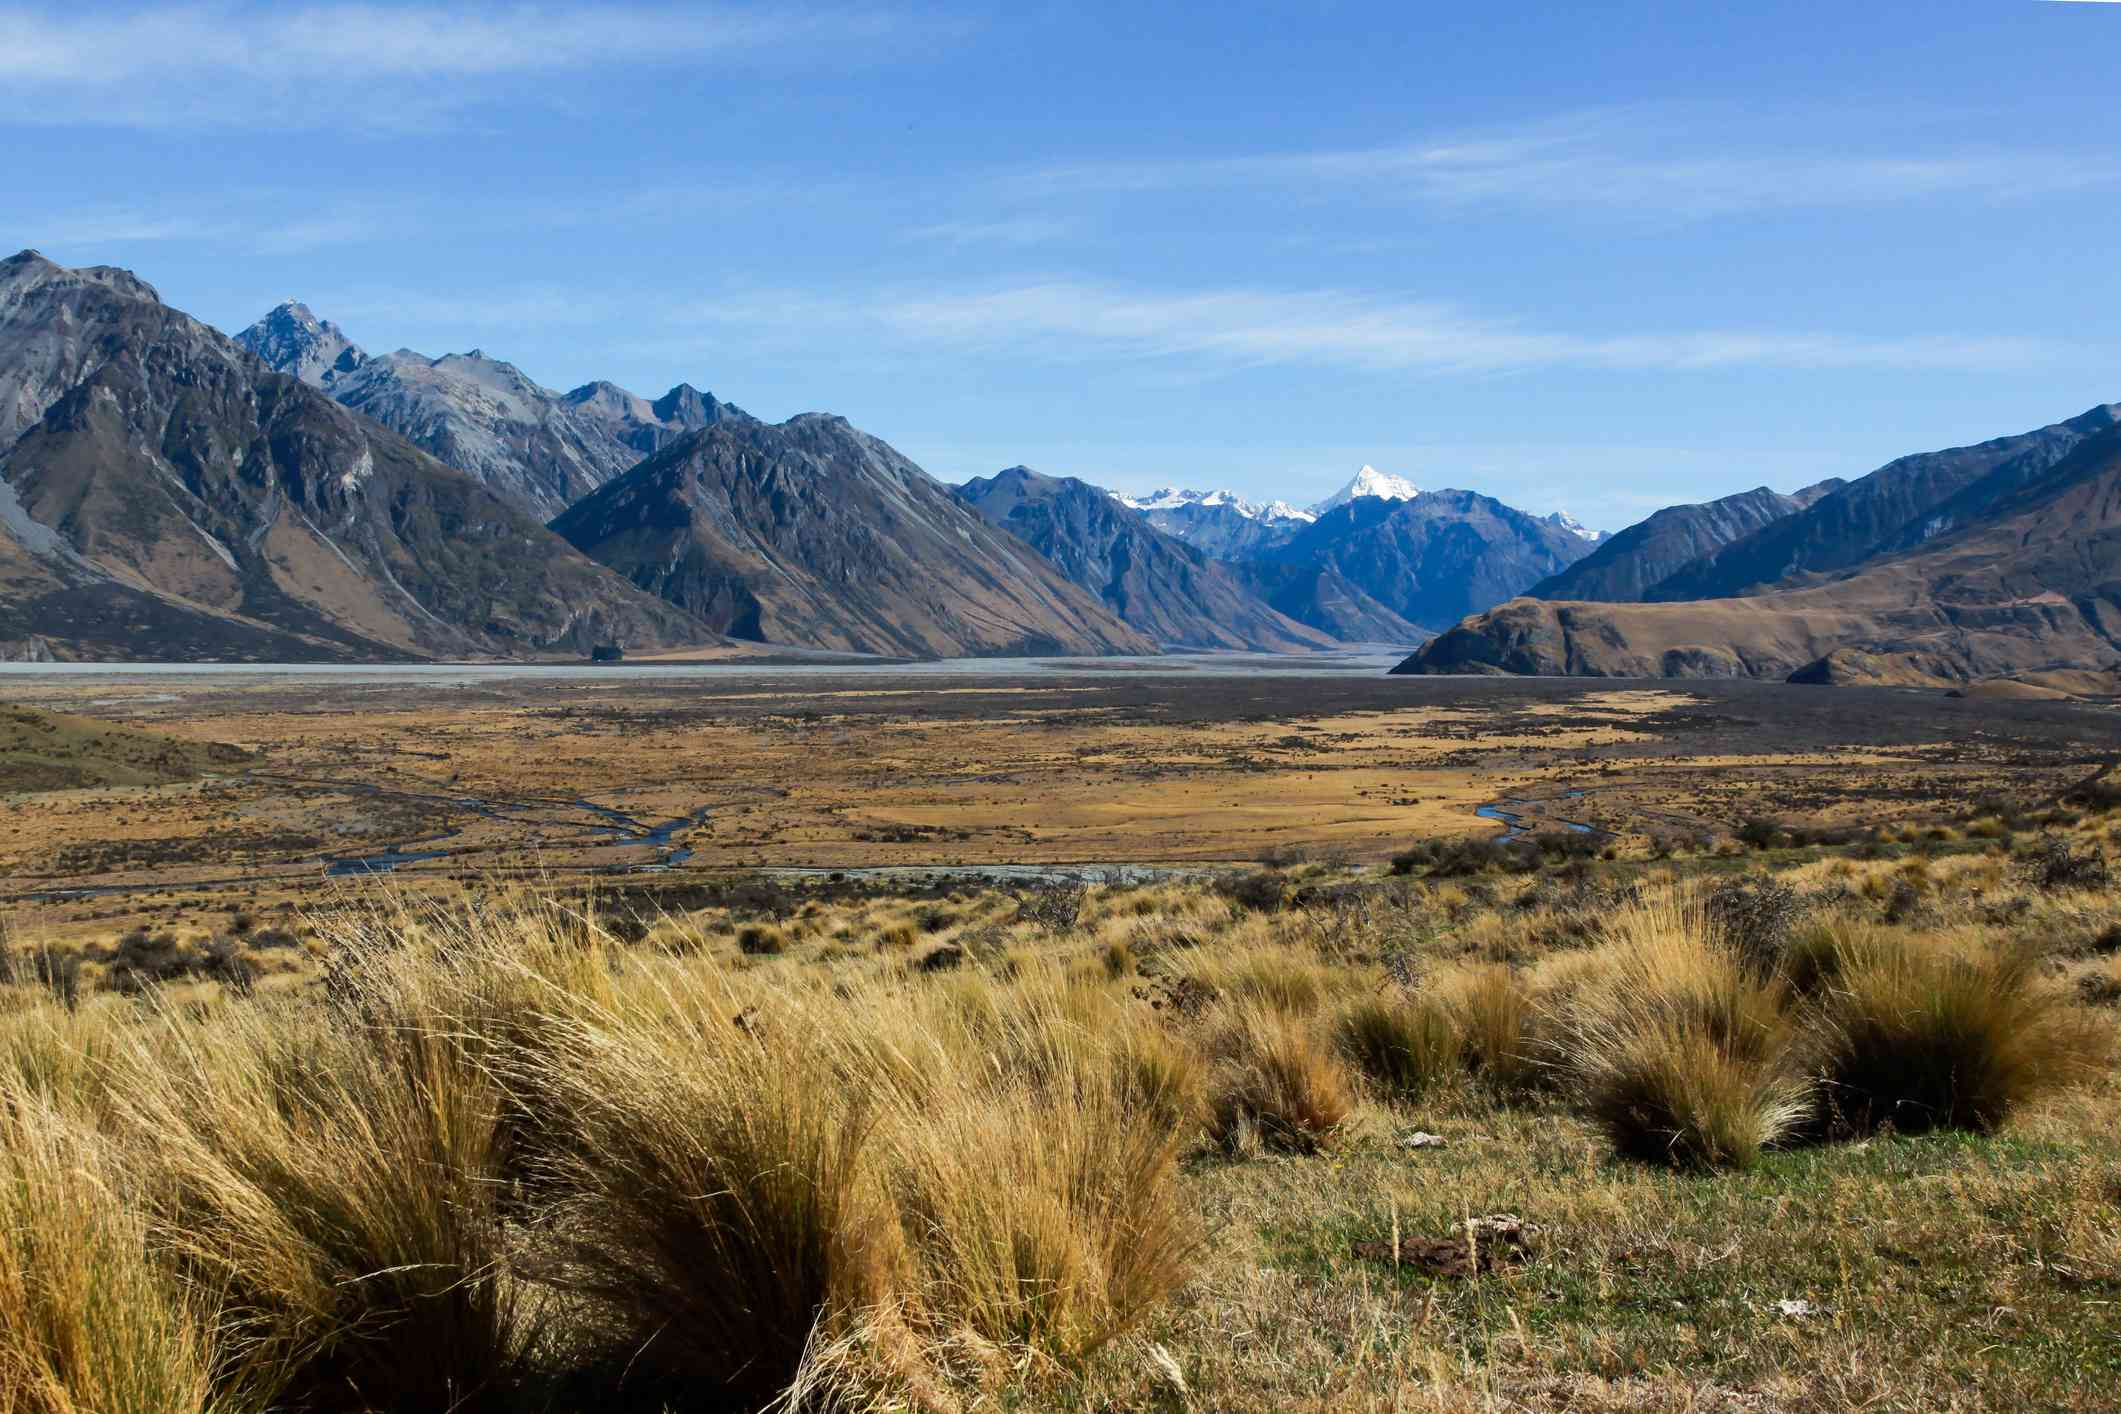 mountains and grassy plains Canterbury